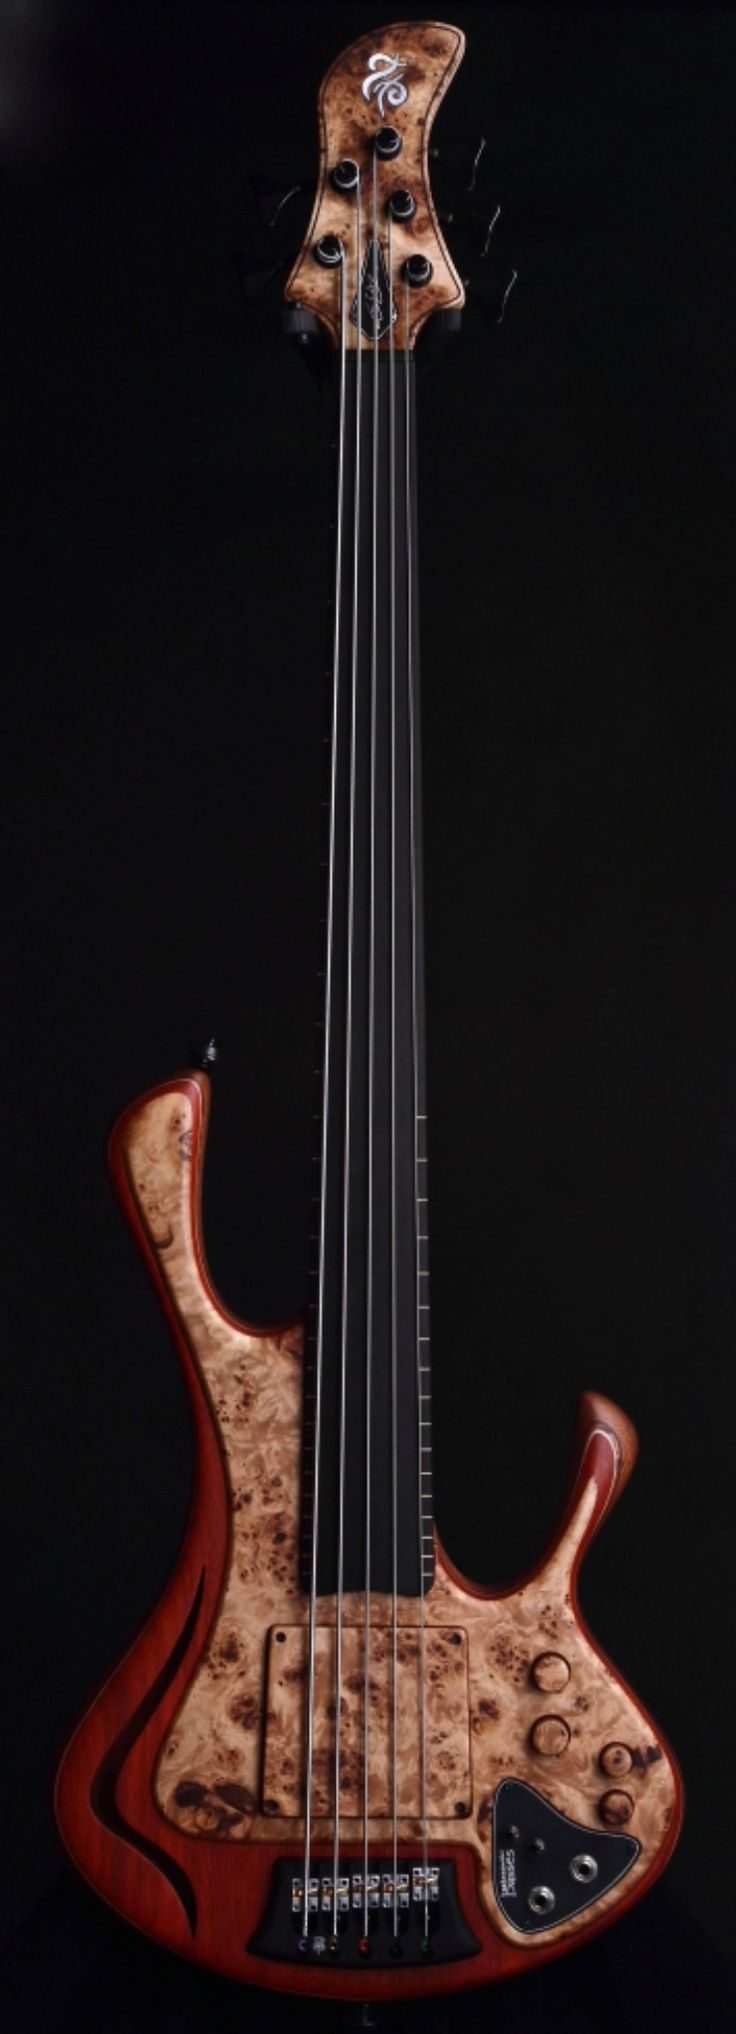 390 best musical instruments images on pinterest | electric